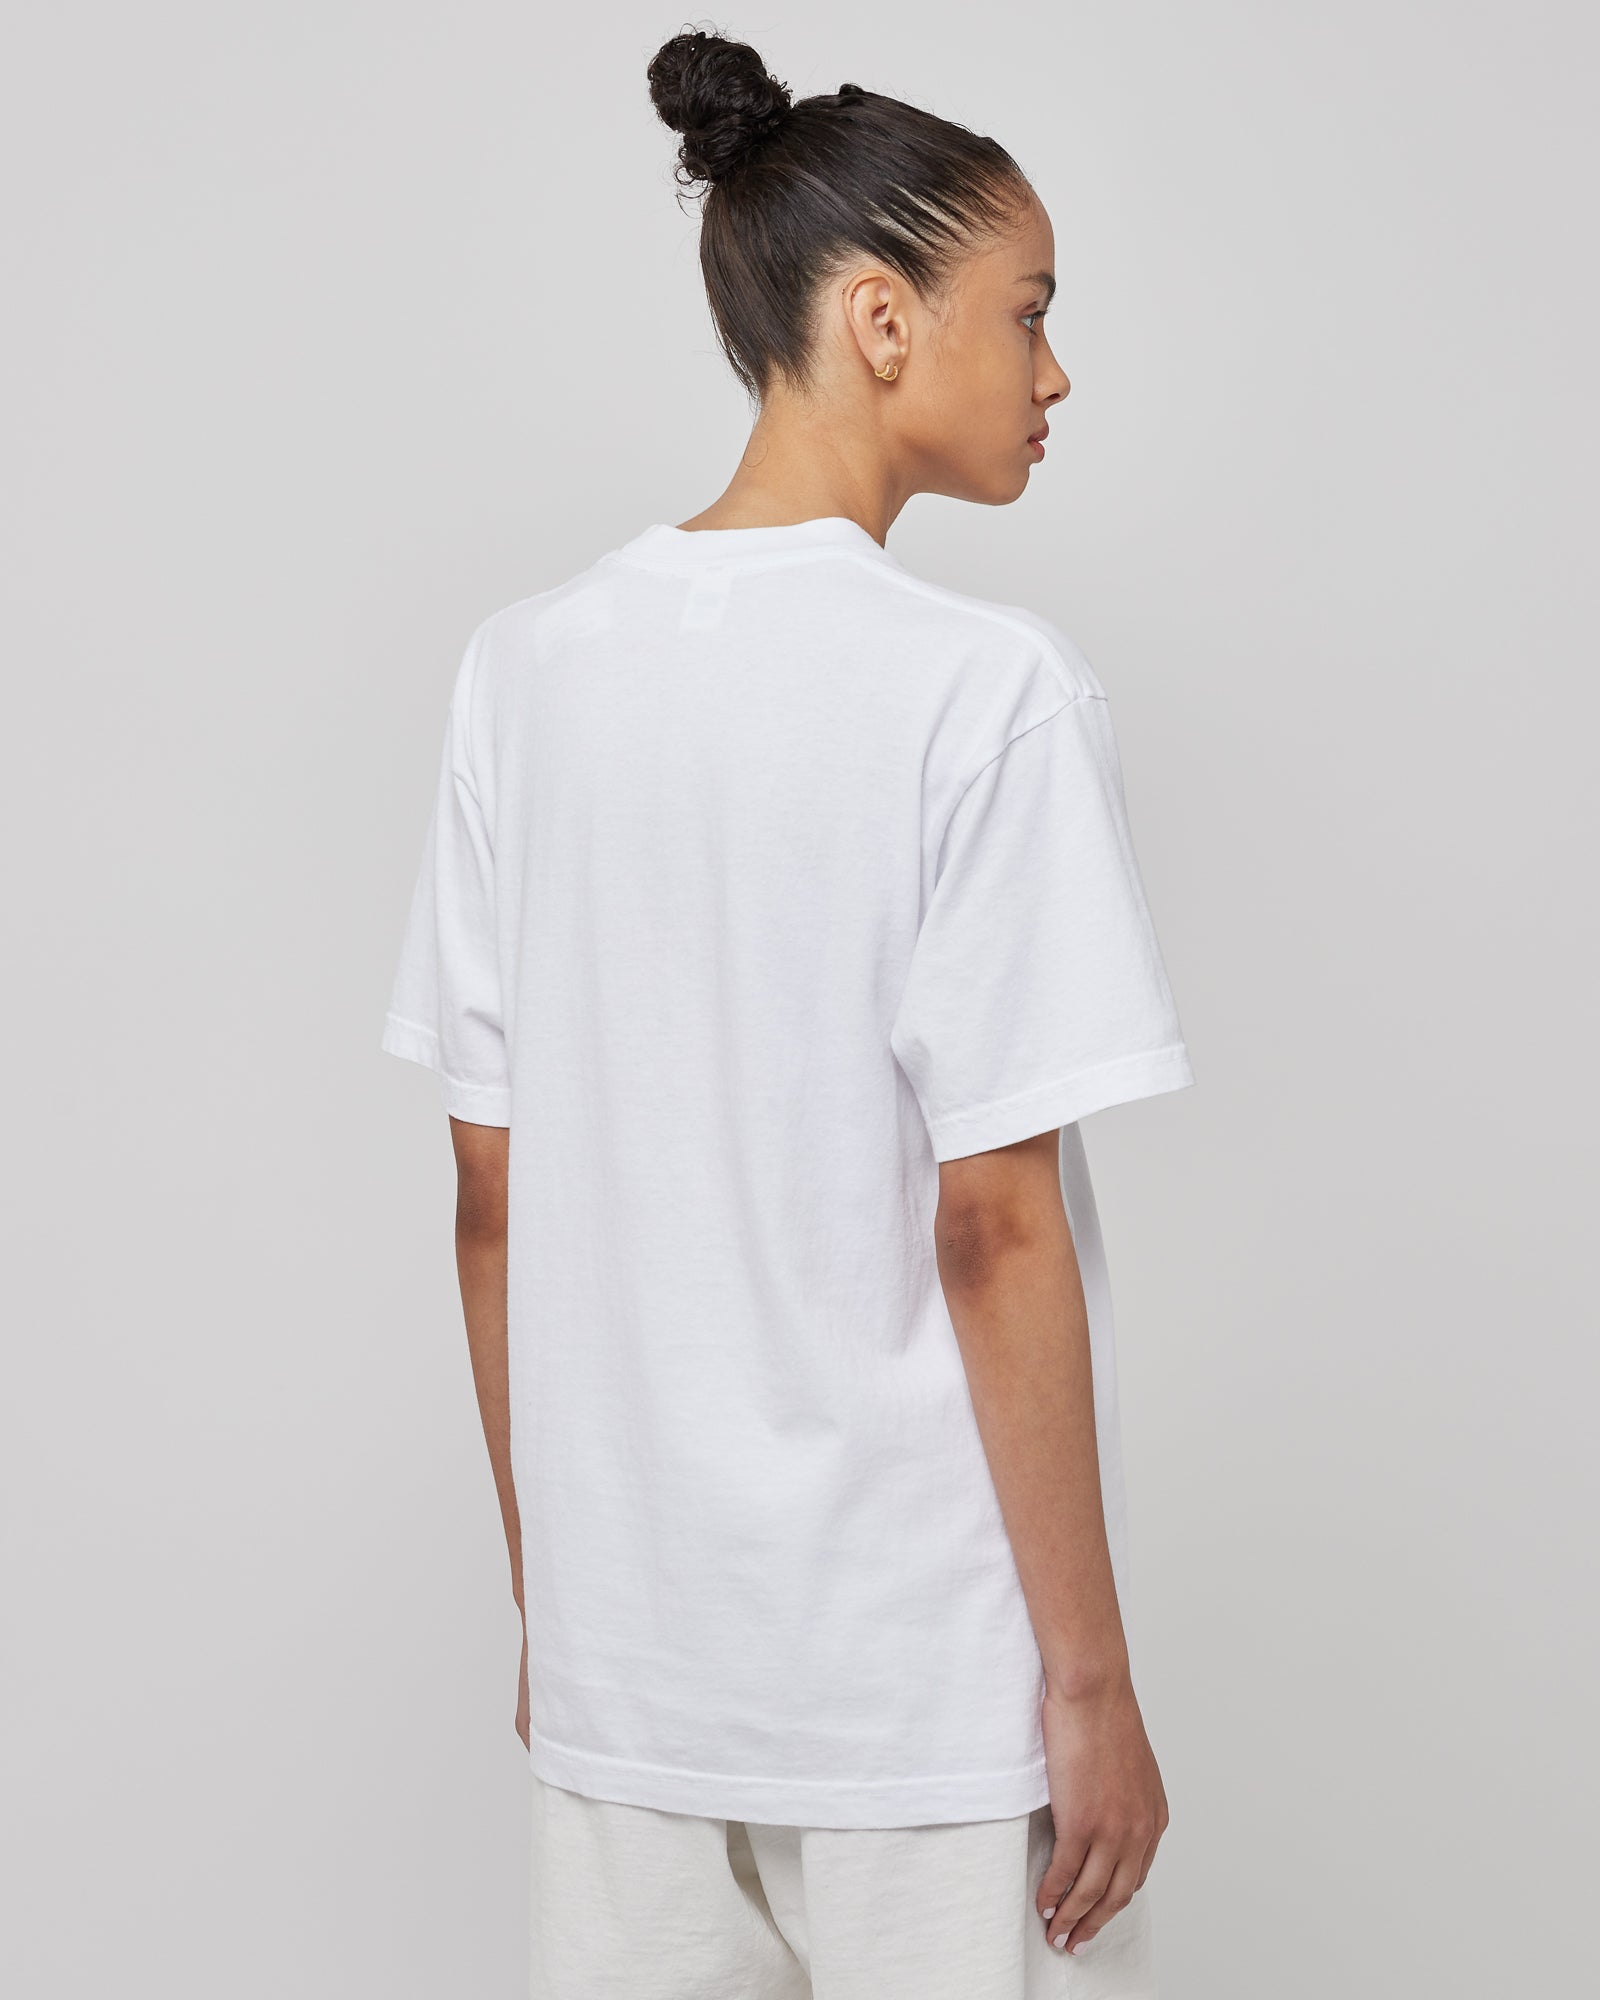 SRCNY T-Shirt in White/Navy